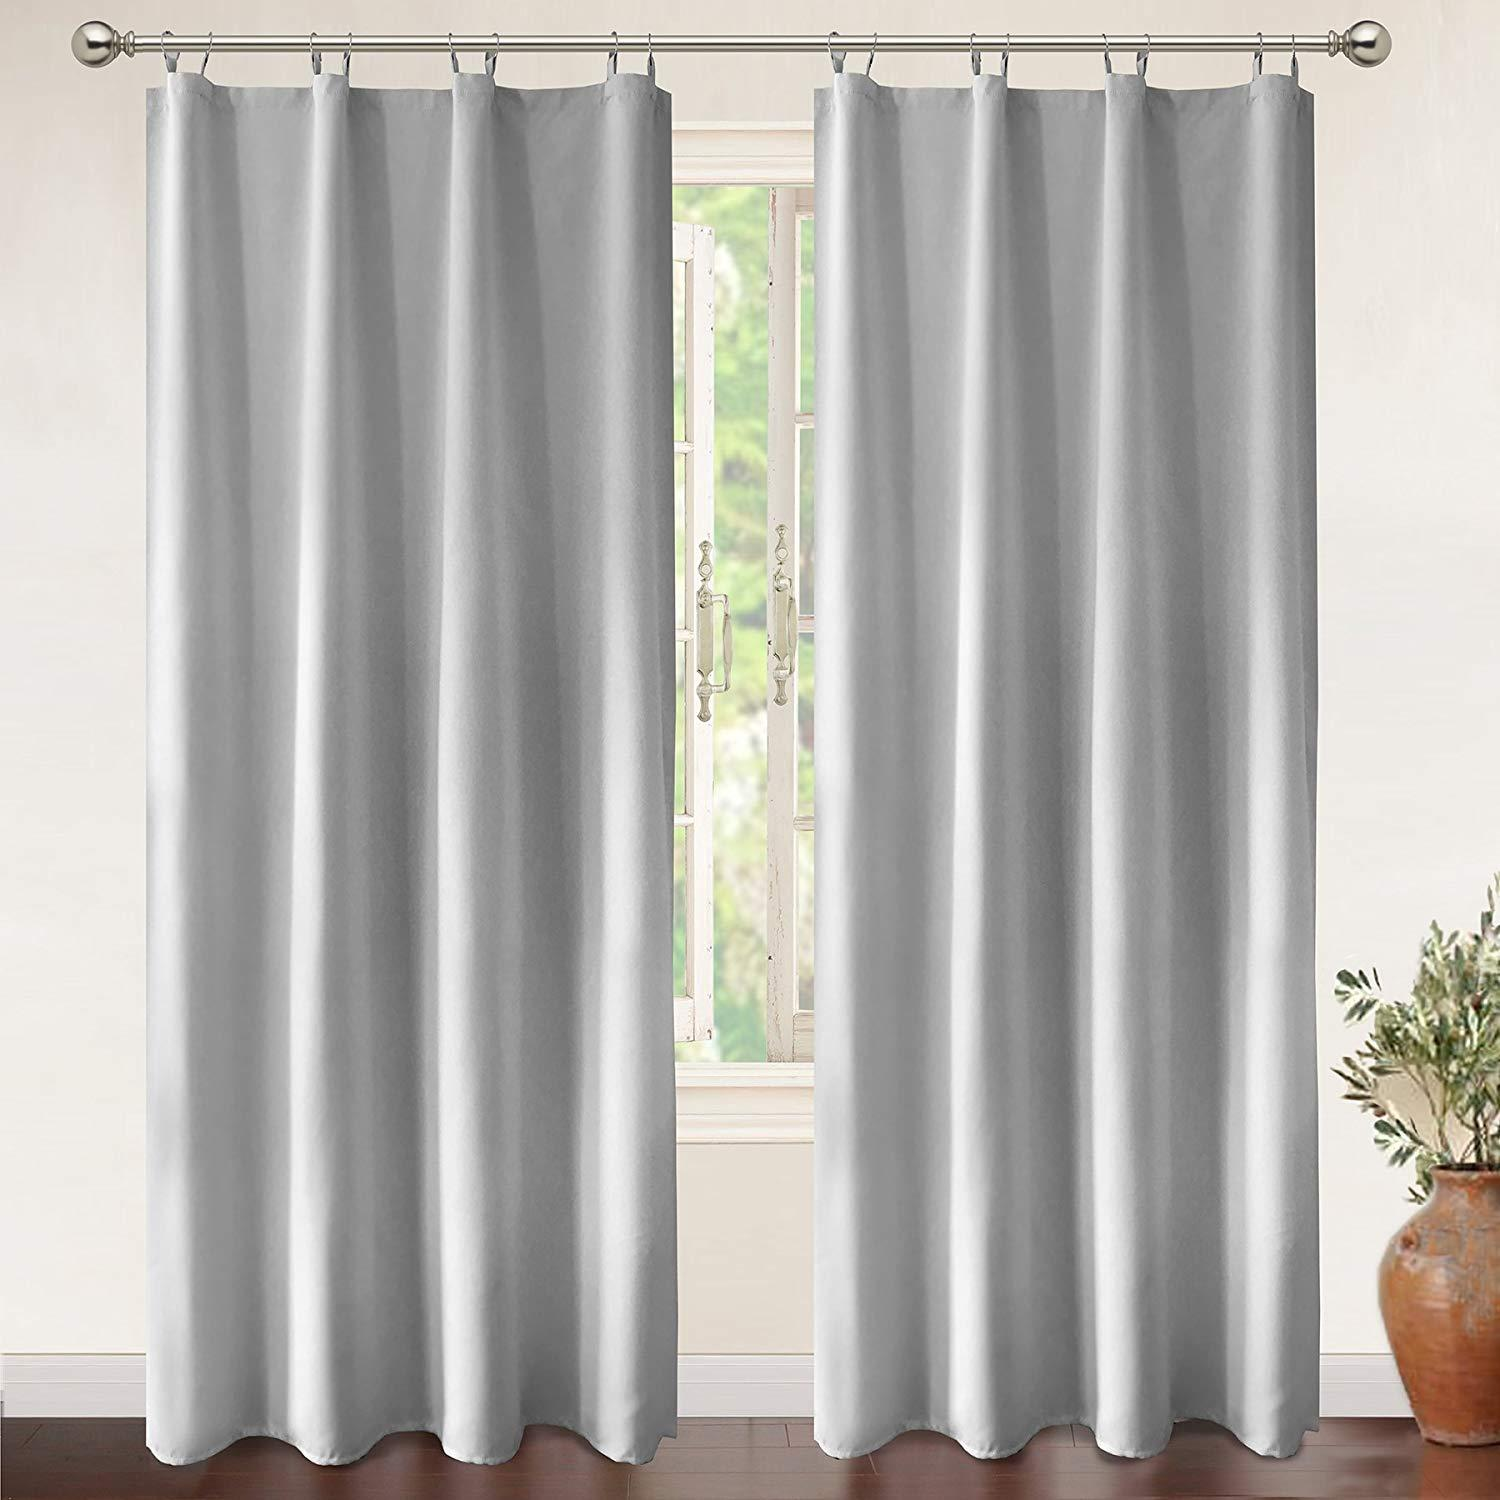 2019 Jarl Home White Blackout Curtain Liner Fabric Functional Grommet  Drapes Thermal Insulated Bedroom Curtains With Rings Hot Sale From  Jarlhome, ...